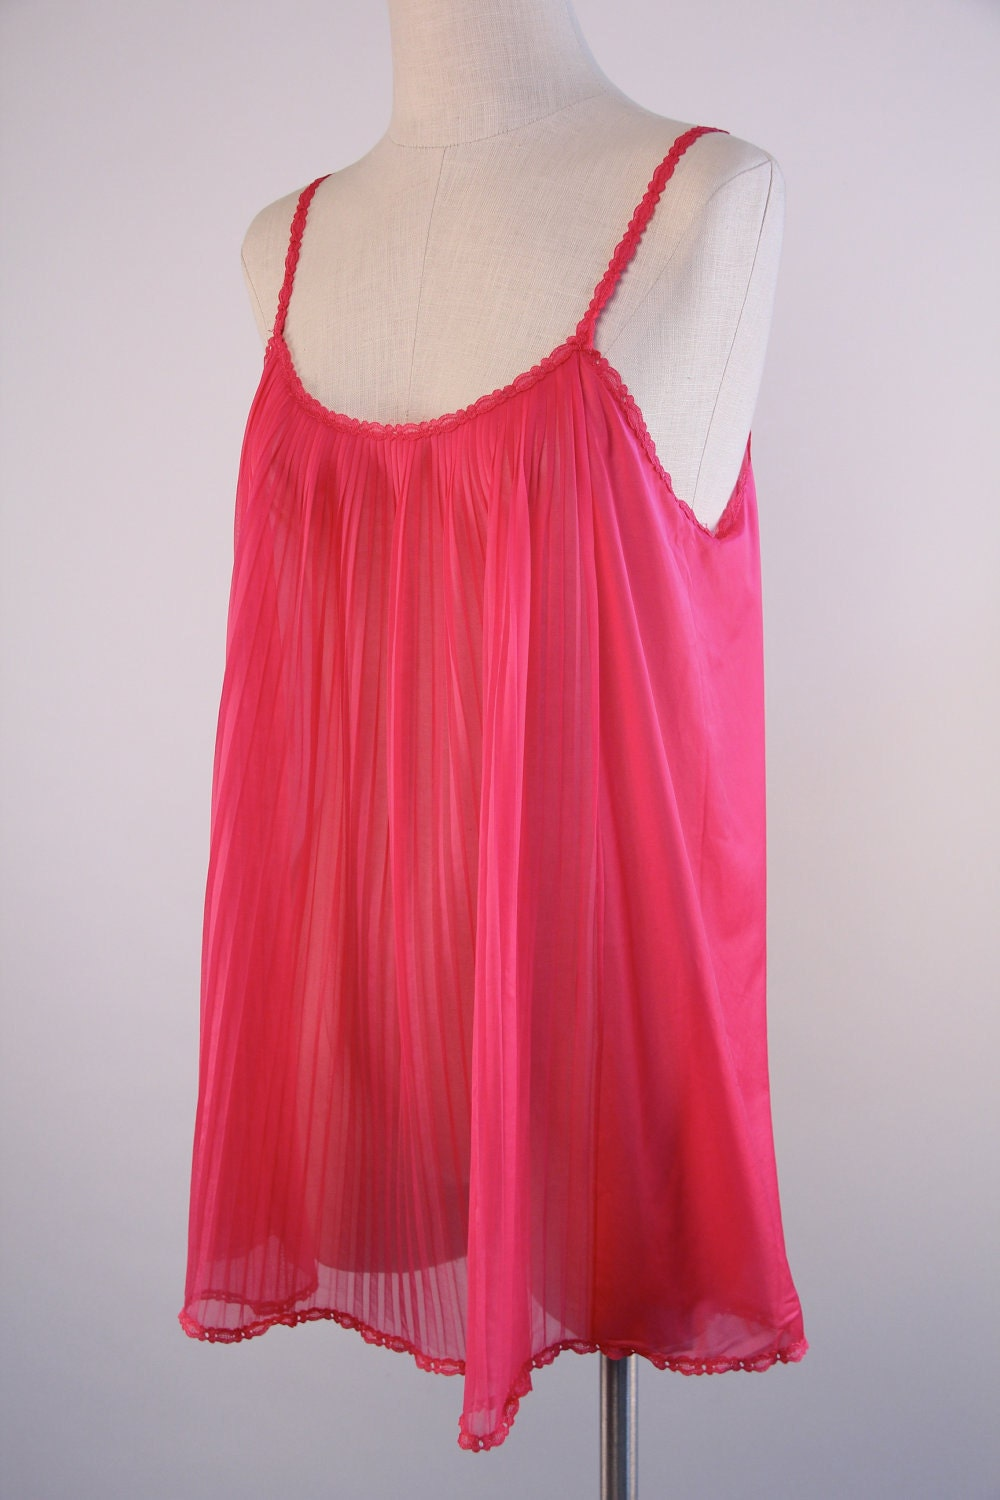 Vintage Fuchsia Pink Sheer Nylon Babydoll Short Nightie